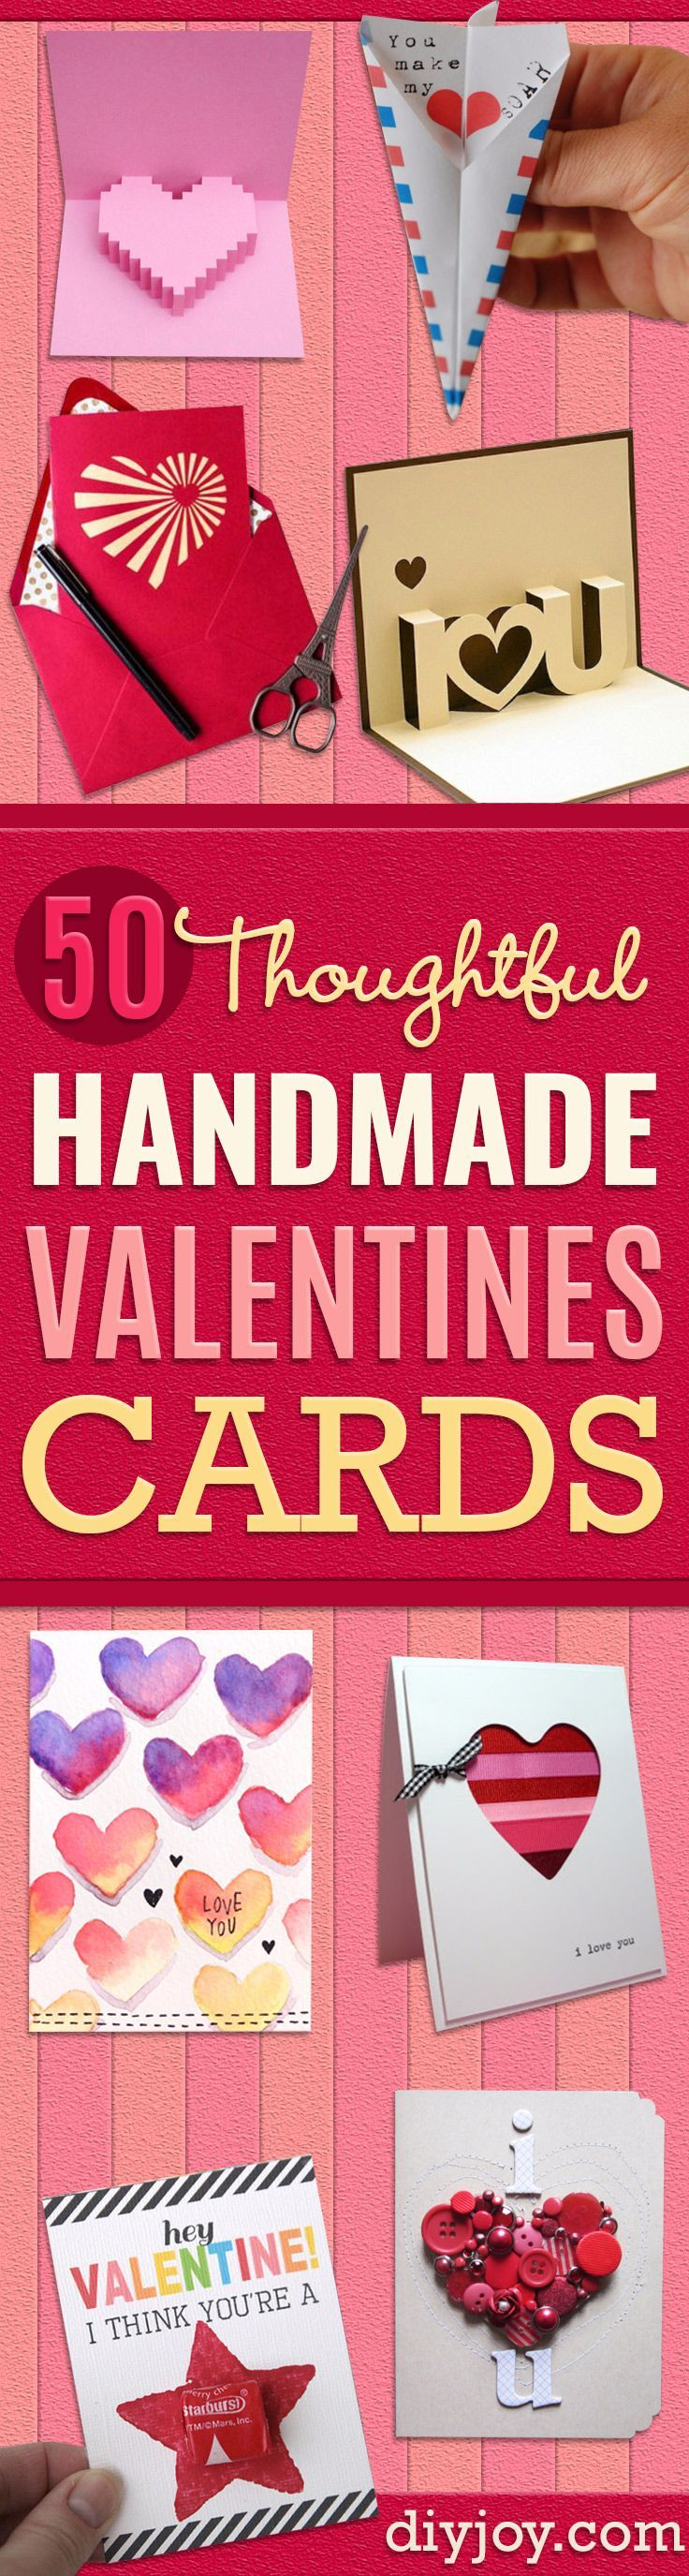 Best 25 Romantic cards ideas – Create Your Own Valentine Card Online